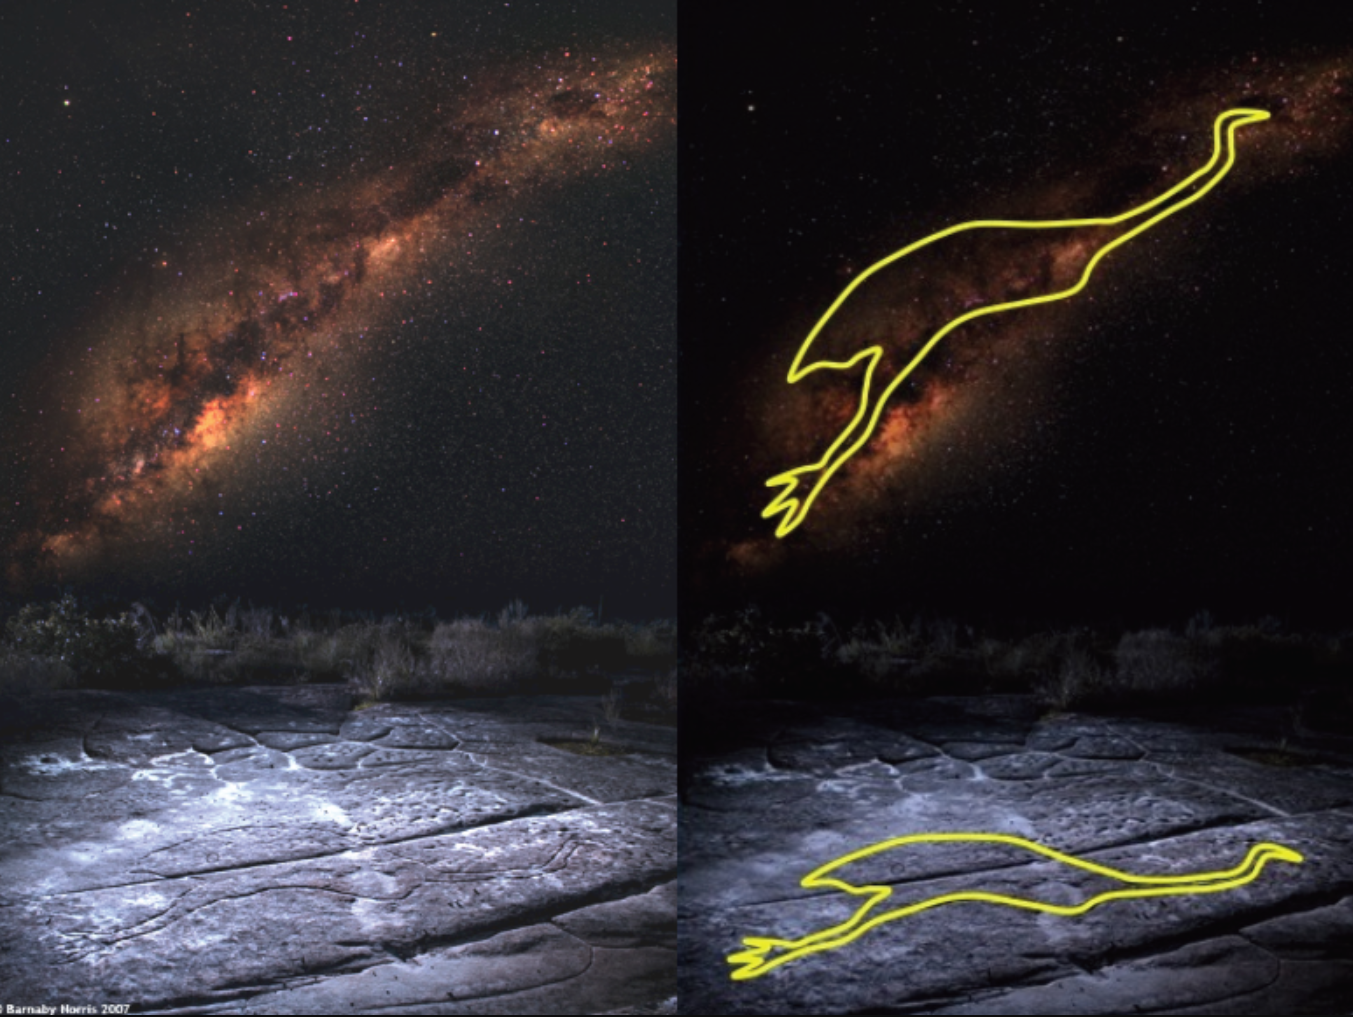 Two panel image. In the foreground, rock carvings in the ground which indicate the shape of an emu. In the background, the Milky Way arch, with the image of the emu overlain on top.